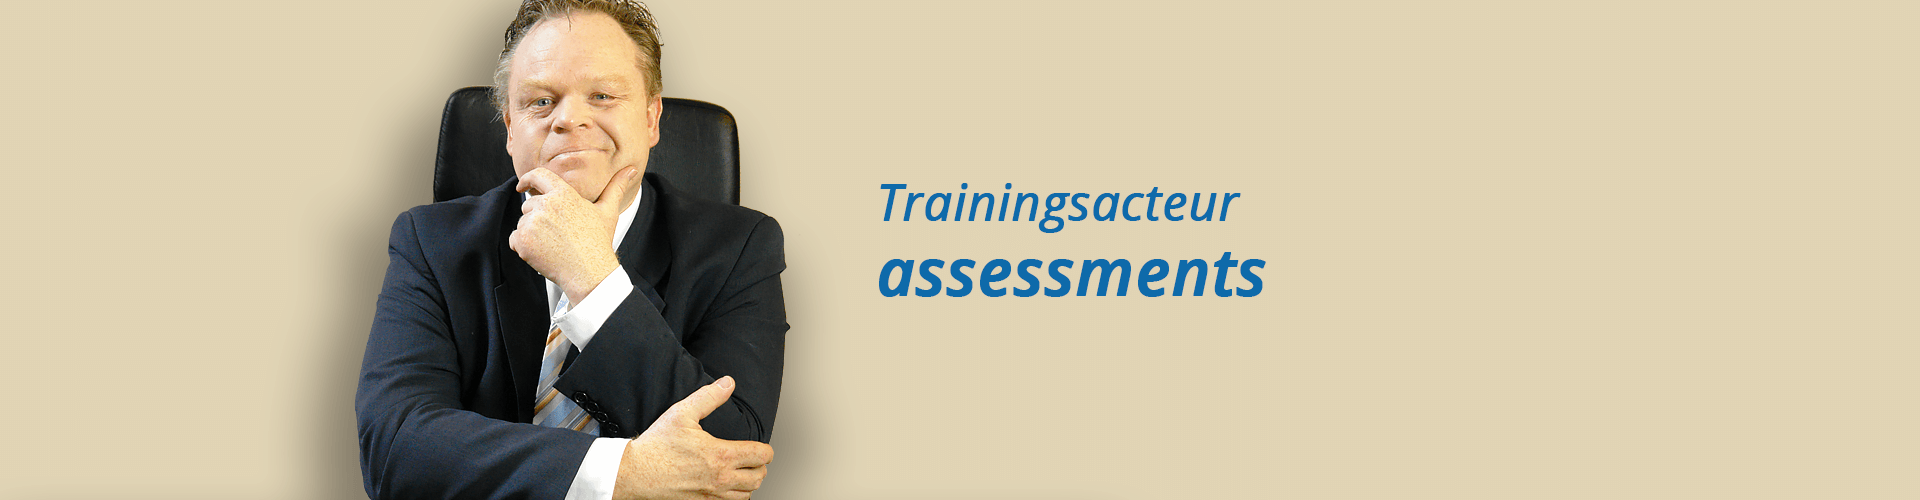 Trainingsacteur assessments